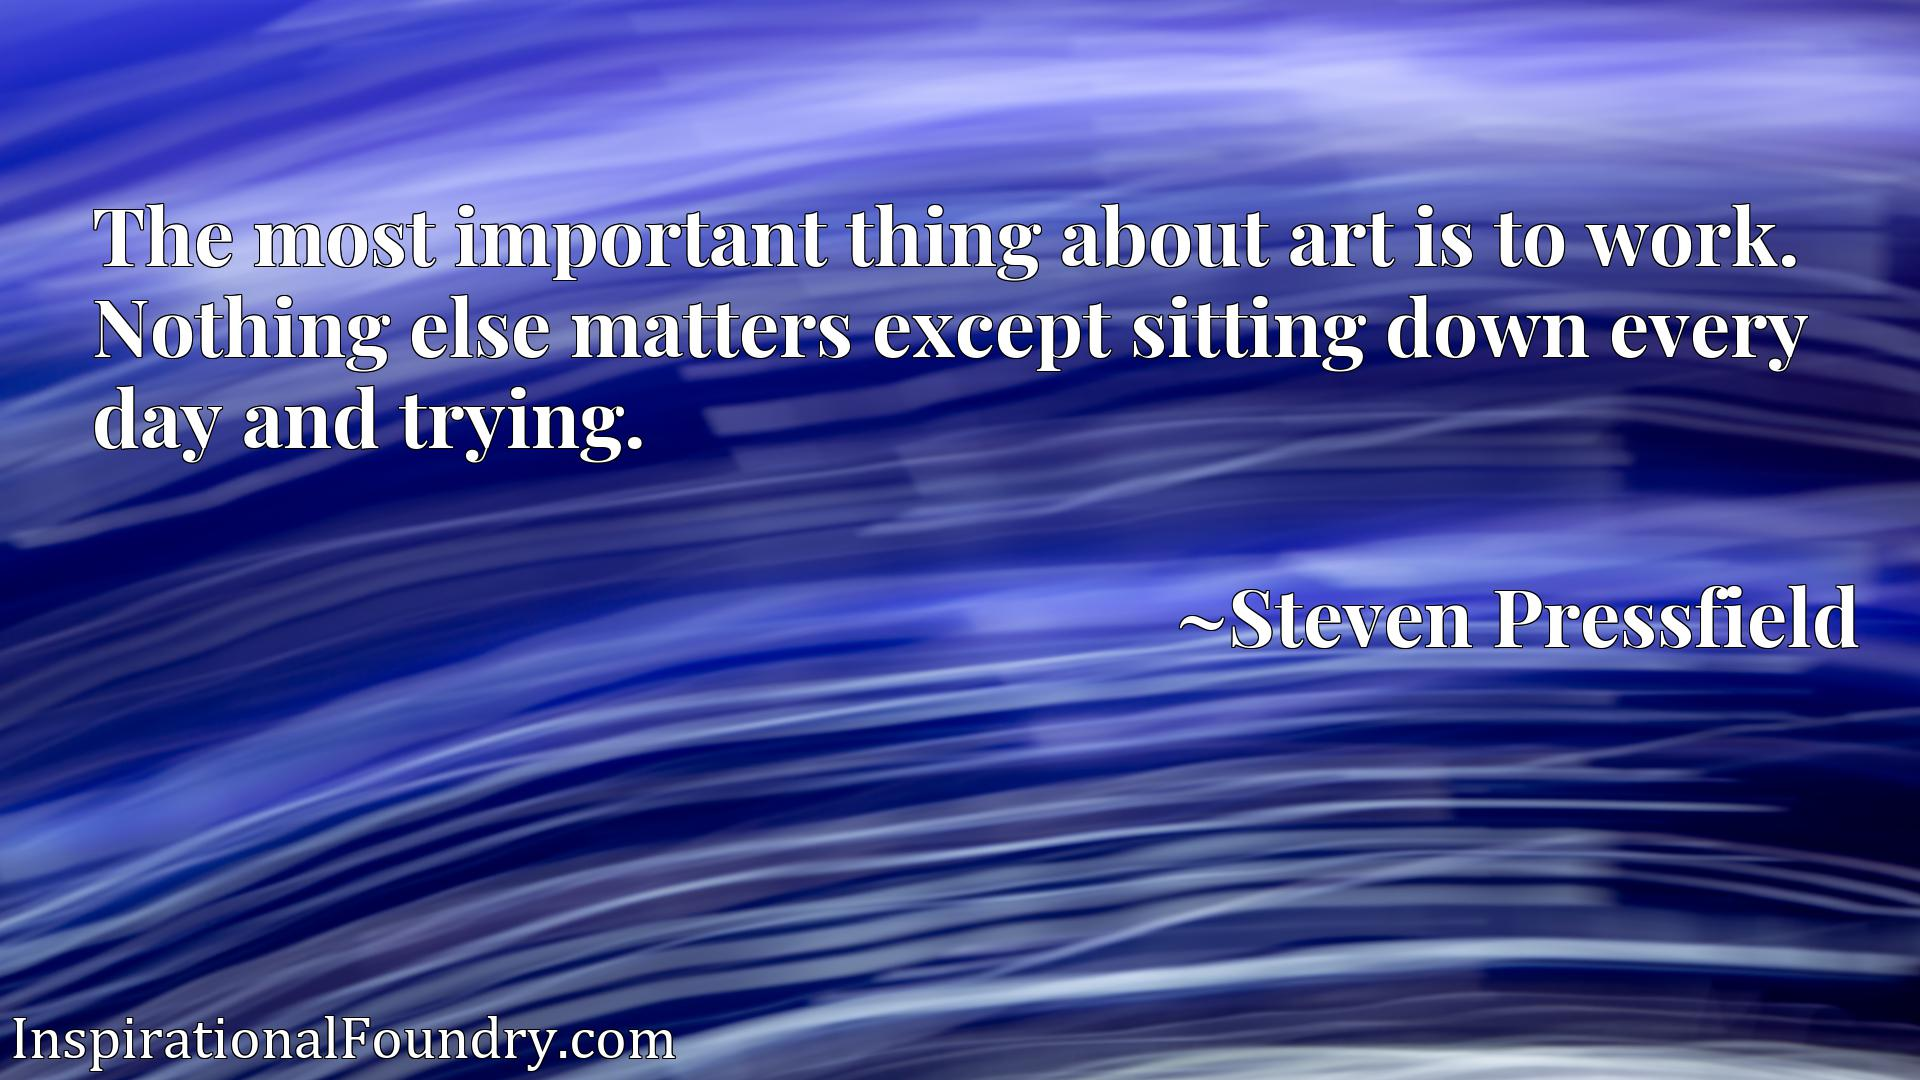 The most important thing about art is to work. Nothing else matters except sitting down every day and trying.